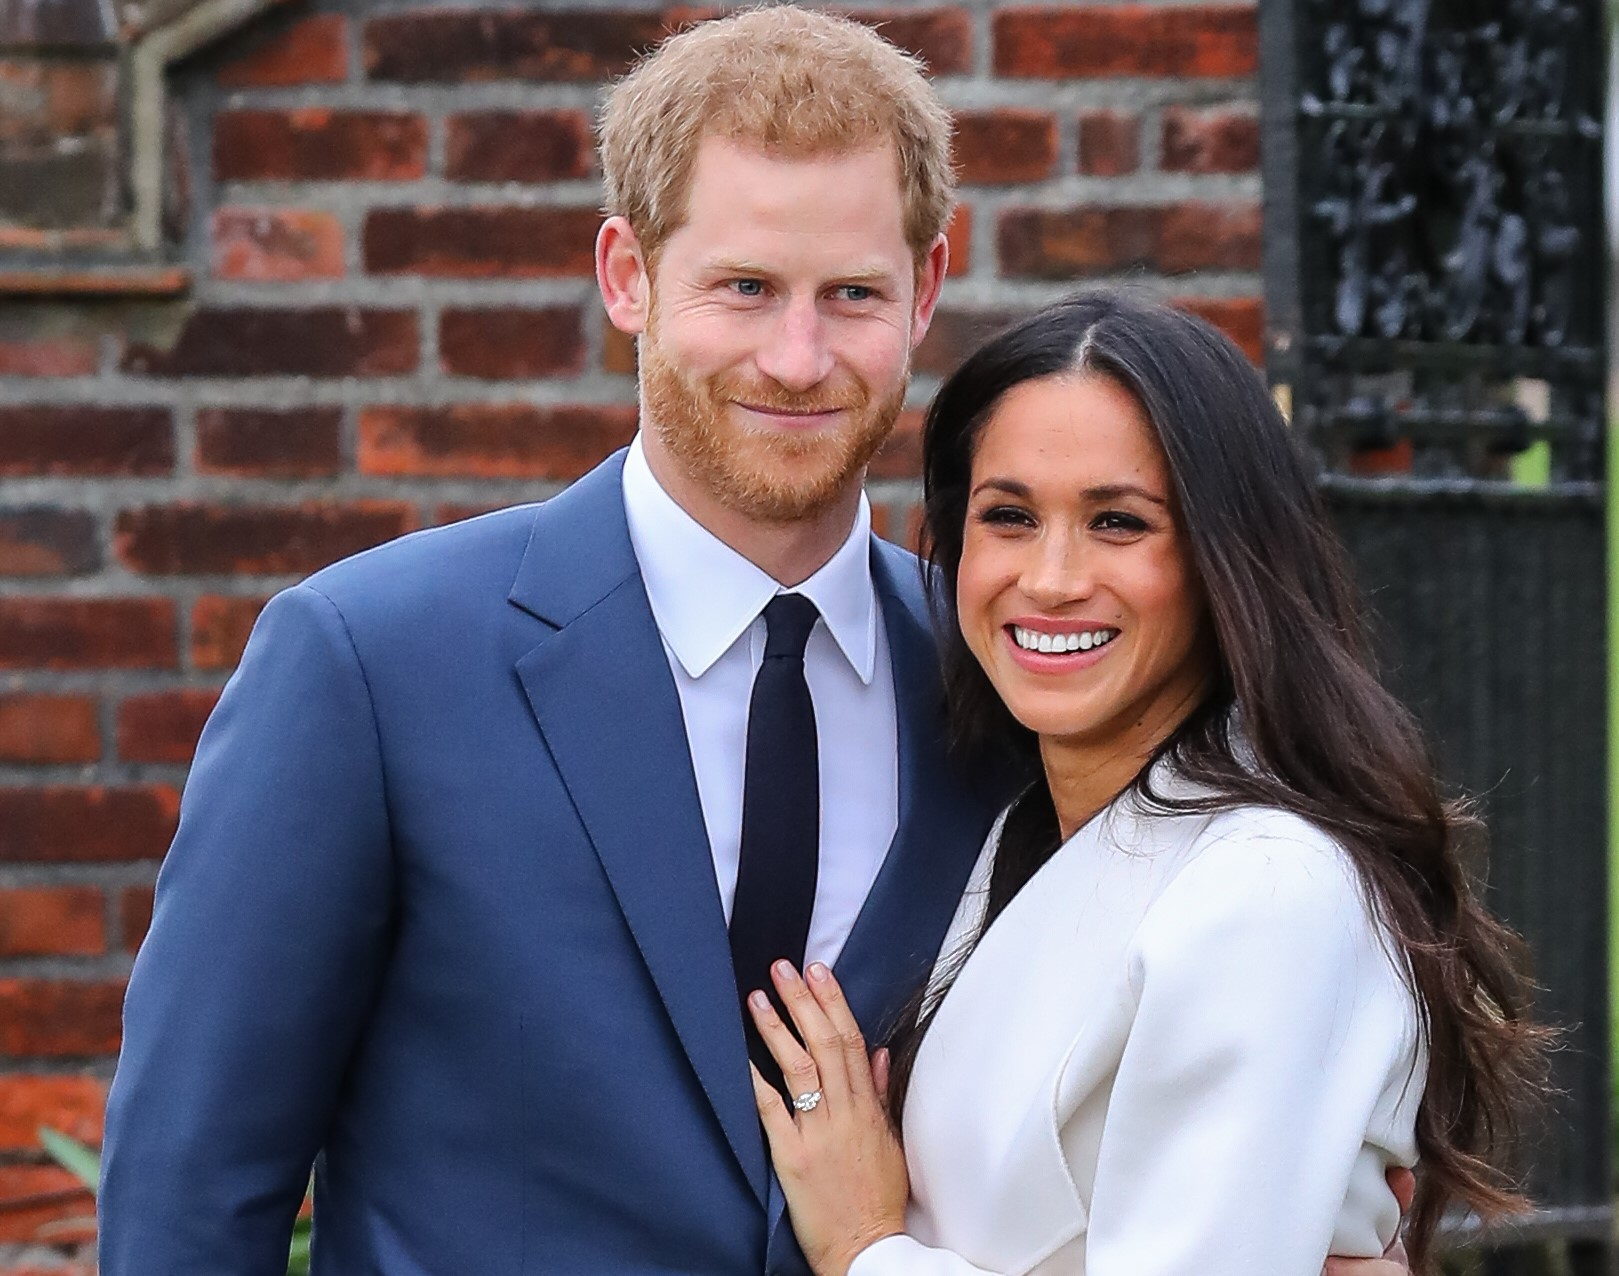 Harry and Meghan's first engagement as a married couple announced